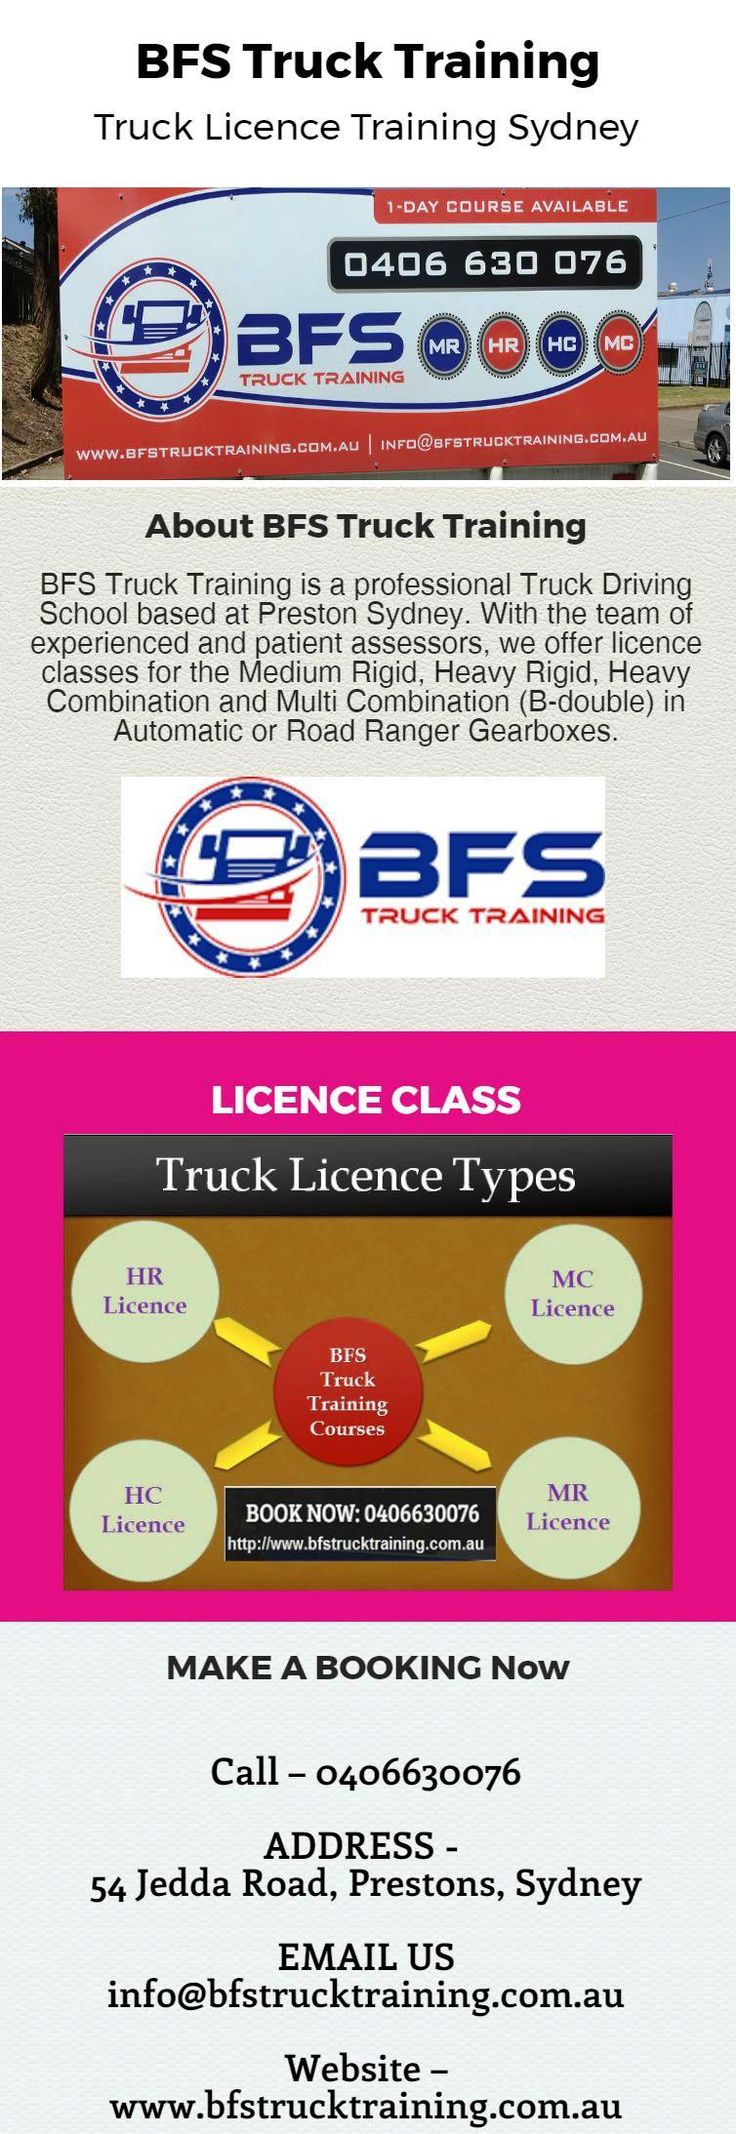 Browse BFS Truck Training for HR Licence, HC Licence, MC Licence, MR Licence and all other higher class truck licence in Sydney. We have professional instructor to provide you best truck licence training in friendly behavior. Contact us today for more details at  - 0406630076